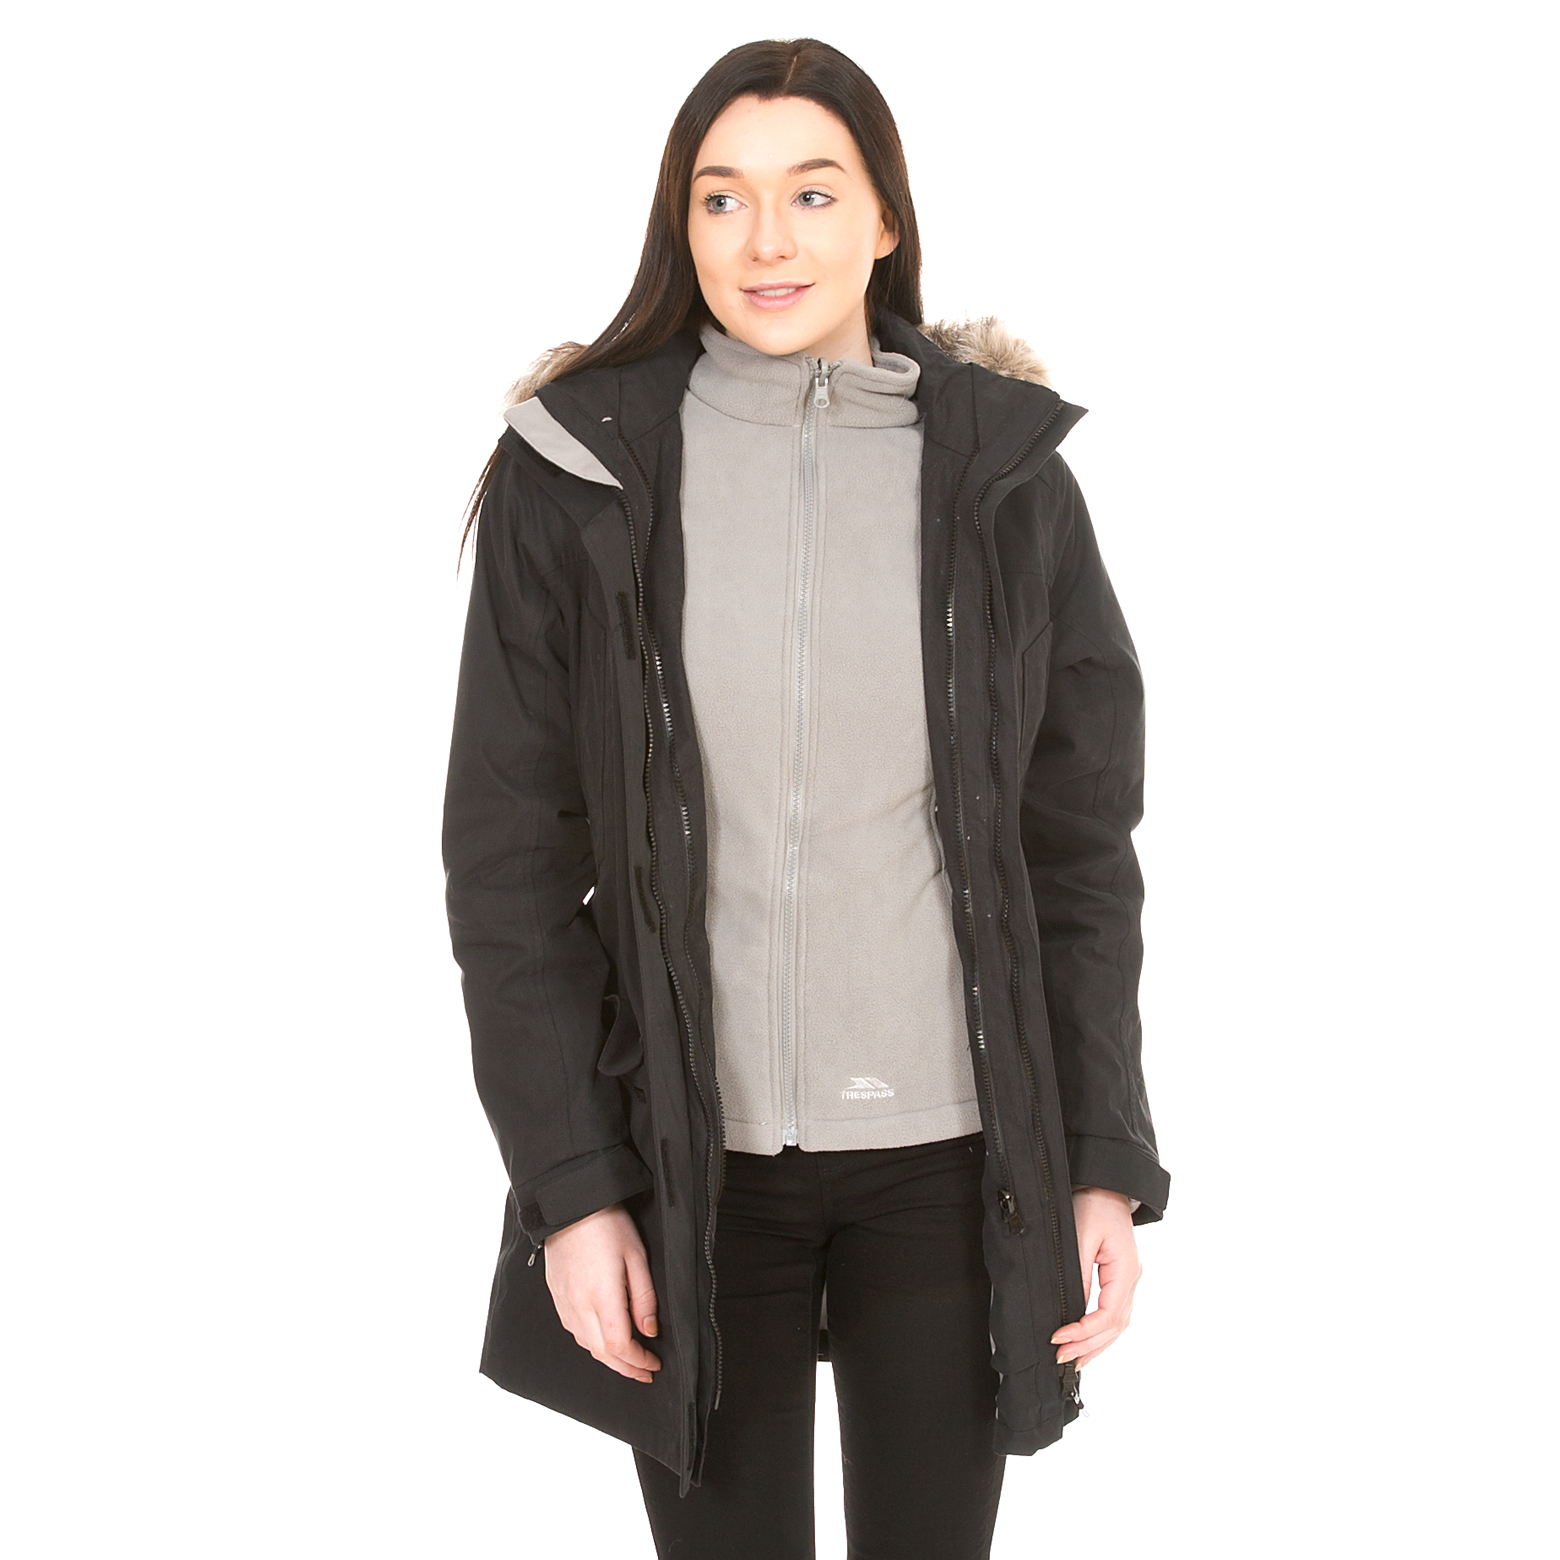 Maebell Womens 3 In 1 Parka Jacket